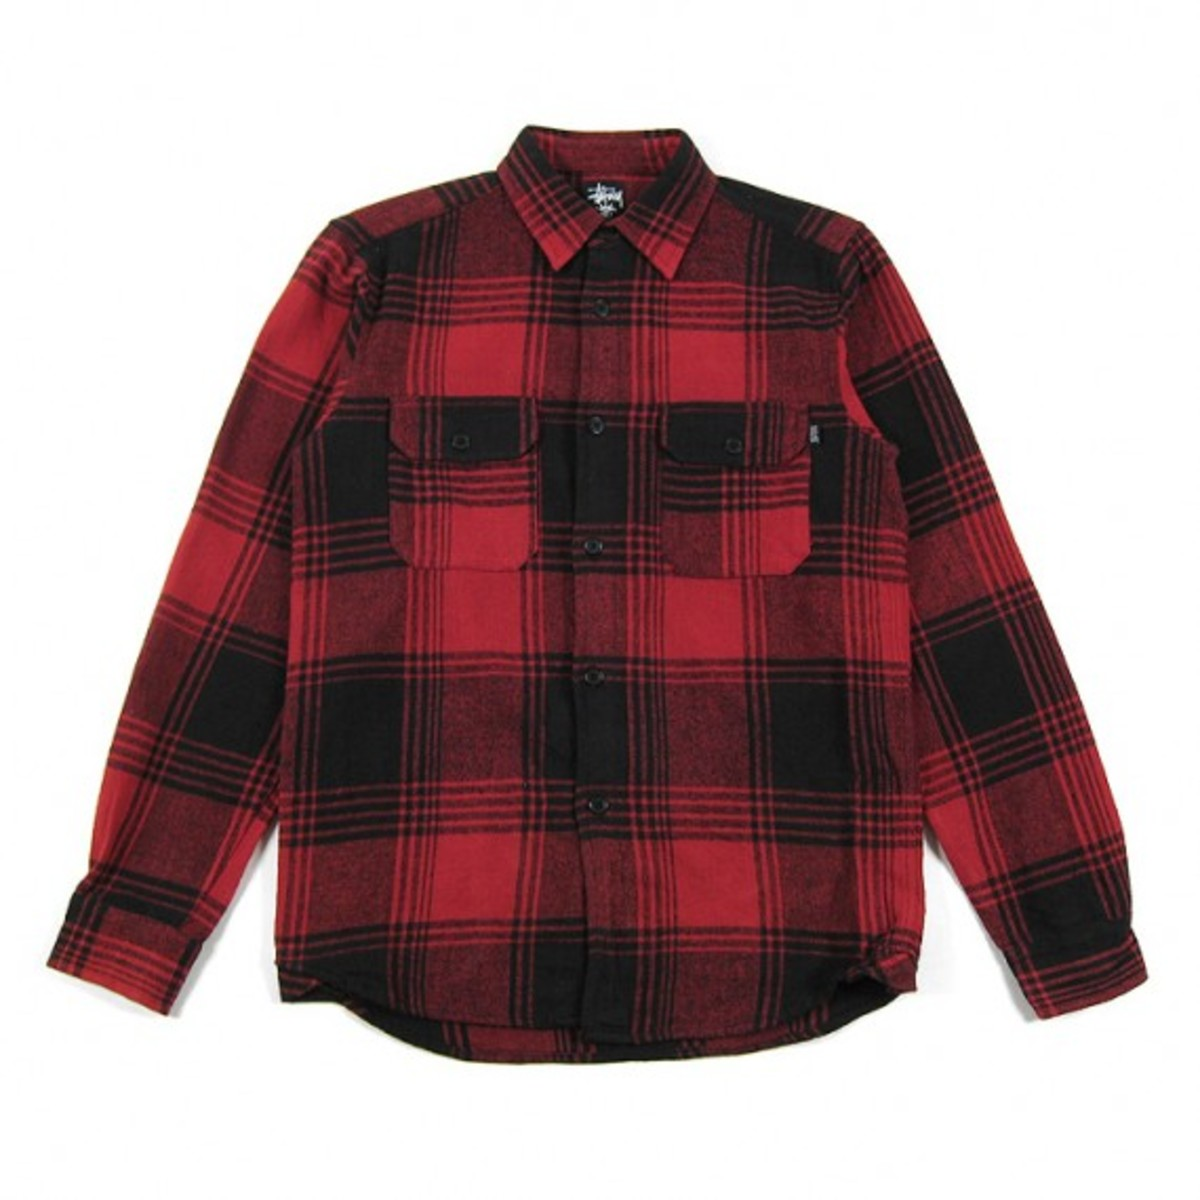 stussy-fall-2009-flannel-shirts-7